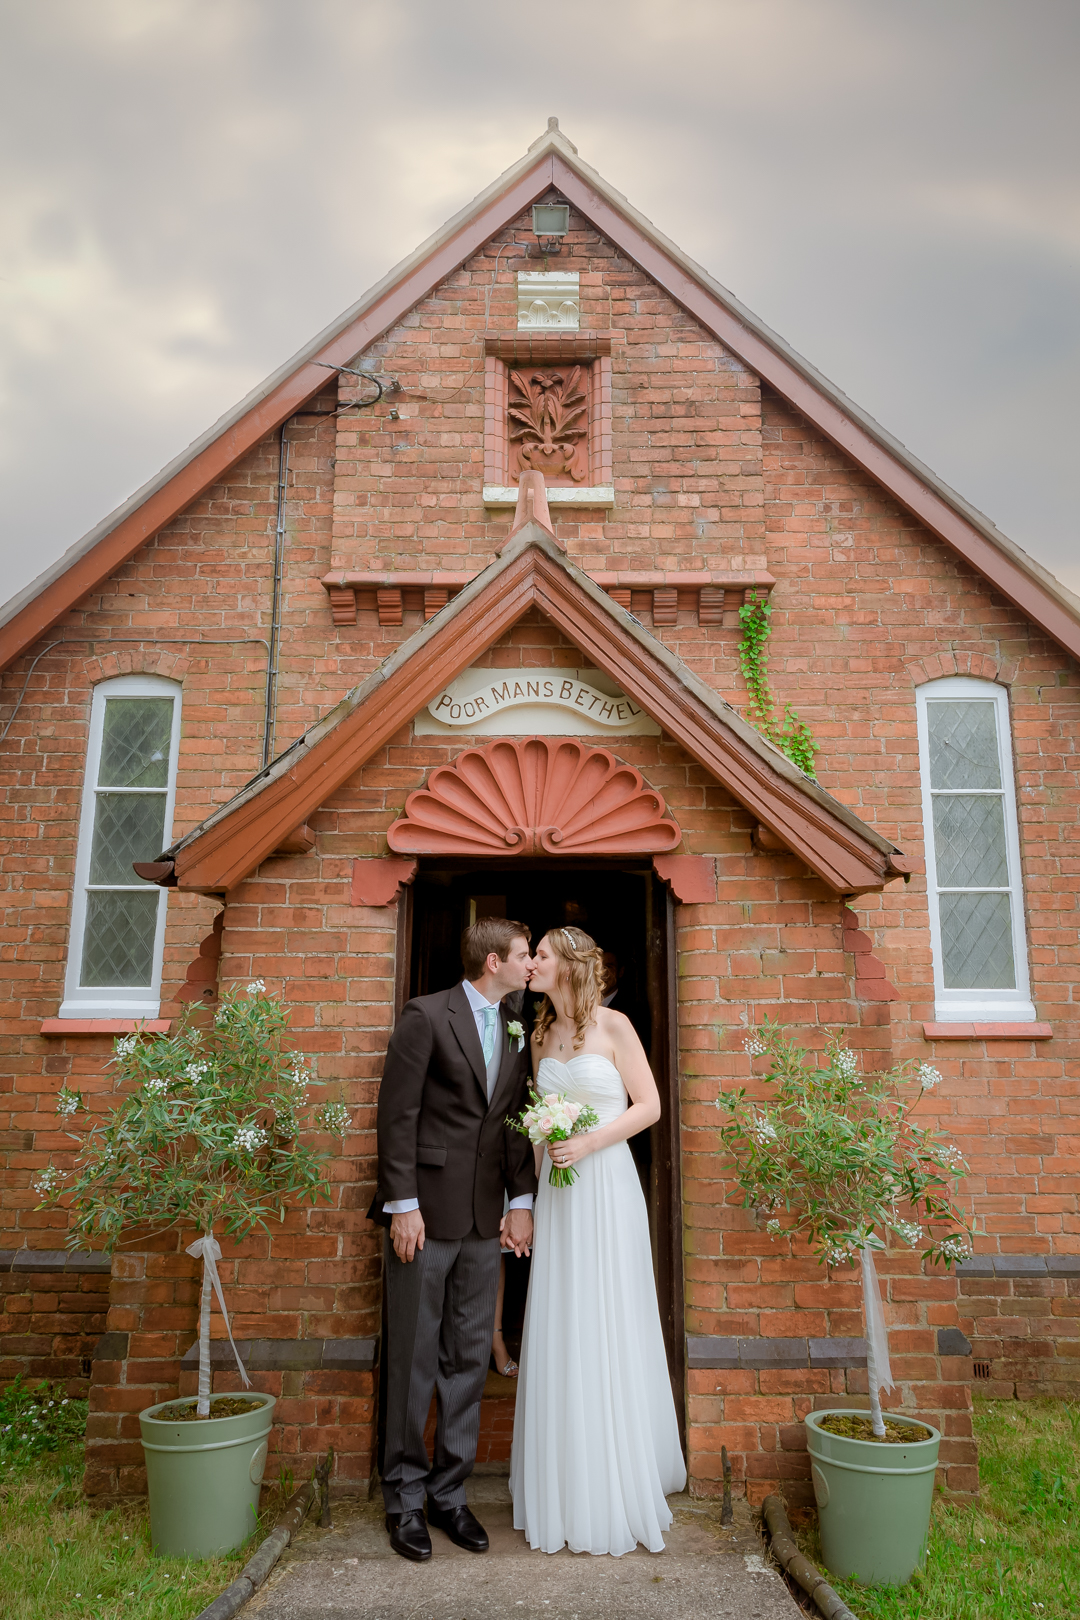 Bradley Chapel Blessing | Outdoor Marquee Wedding | Image by Rocksalt Photography